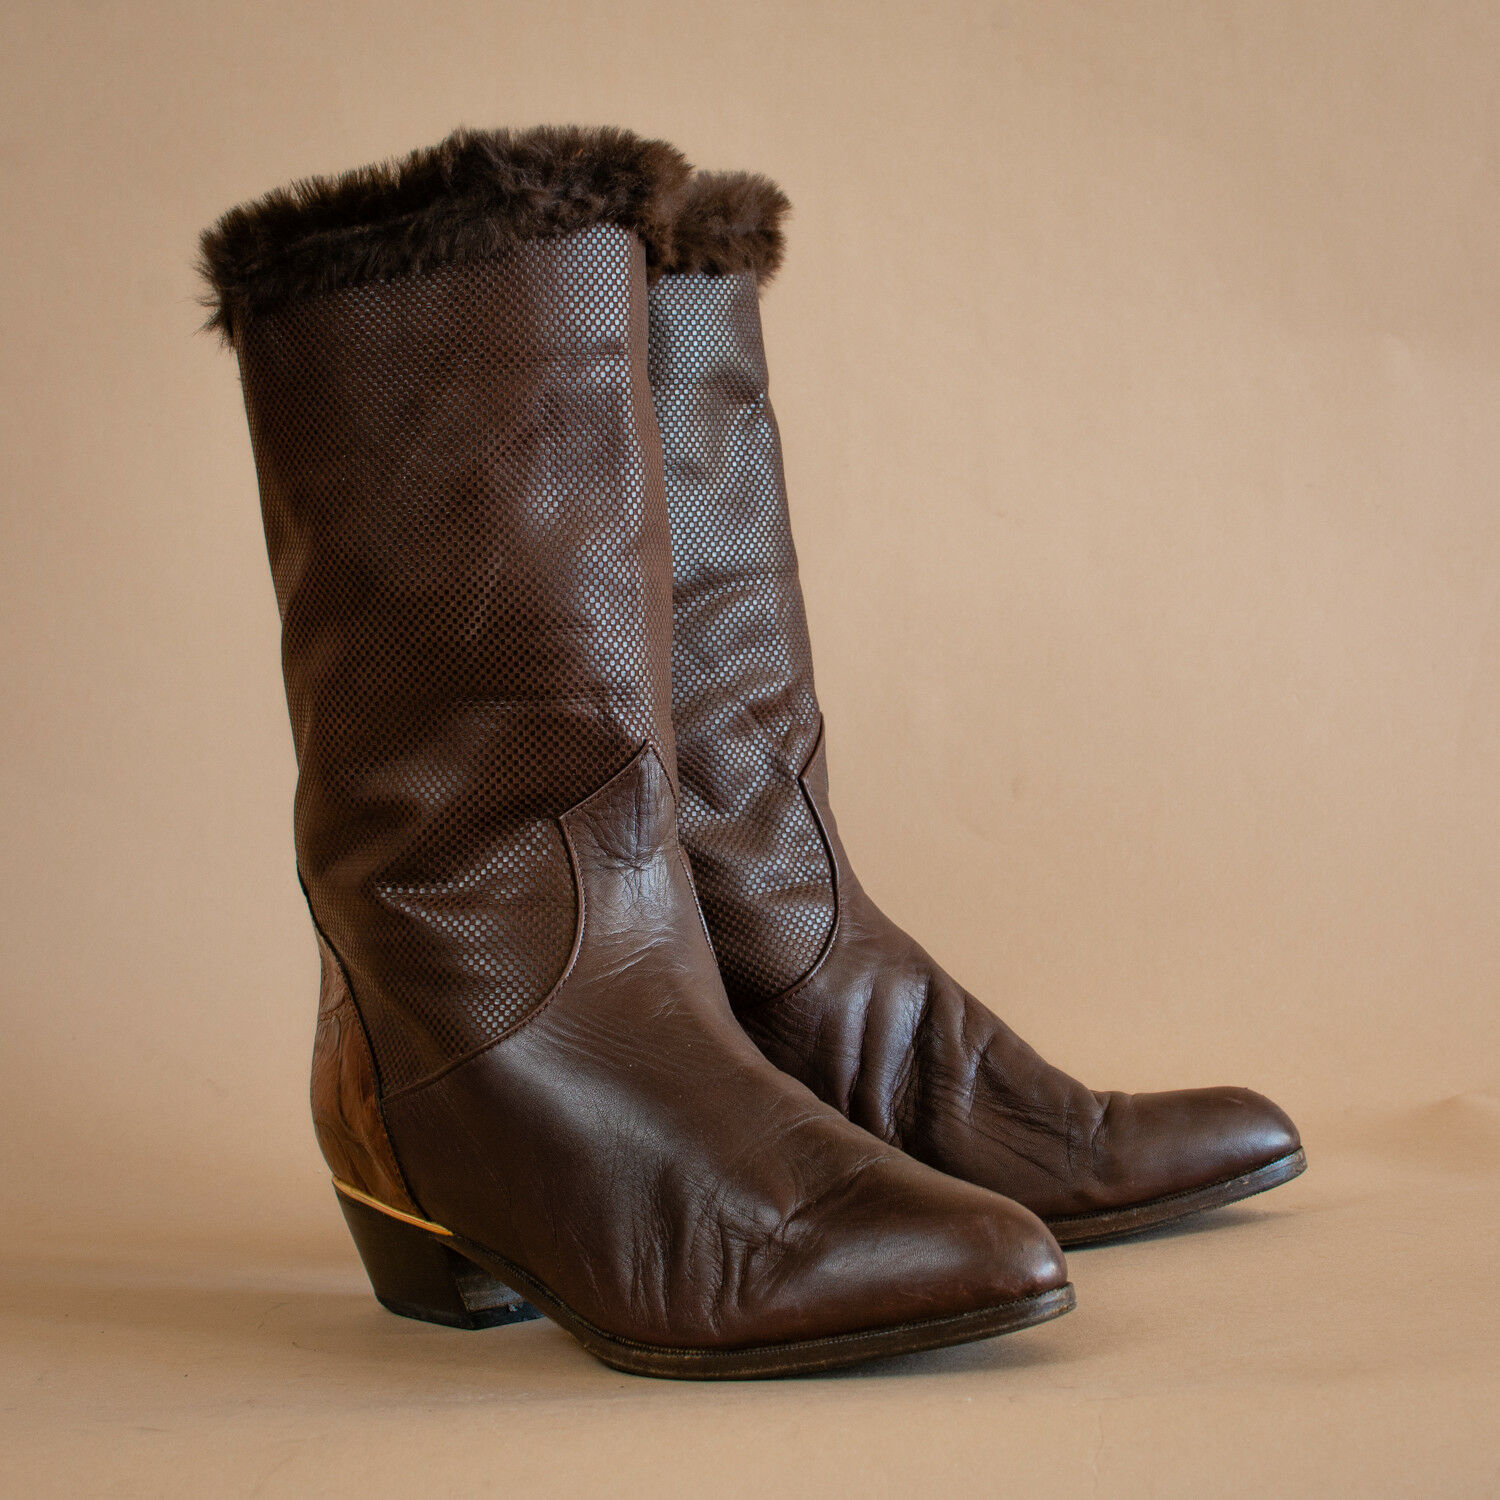 65a334b7f79b4 Vintage 90's Women's Brown Leather Heeled Calf Boots UK 5 EU 38 US 7 ...